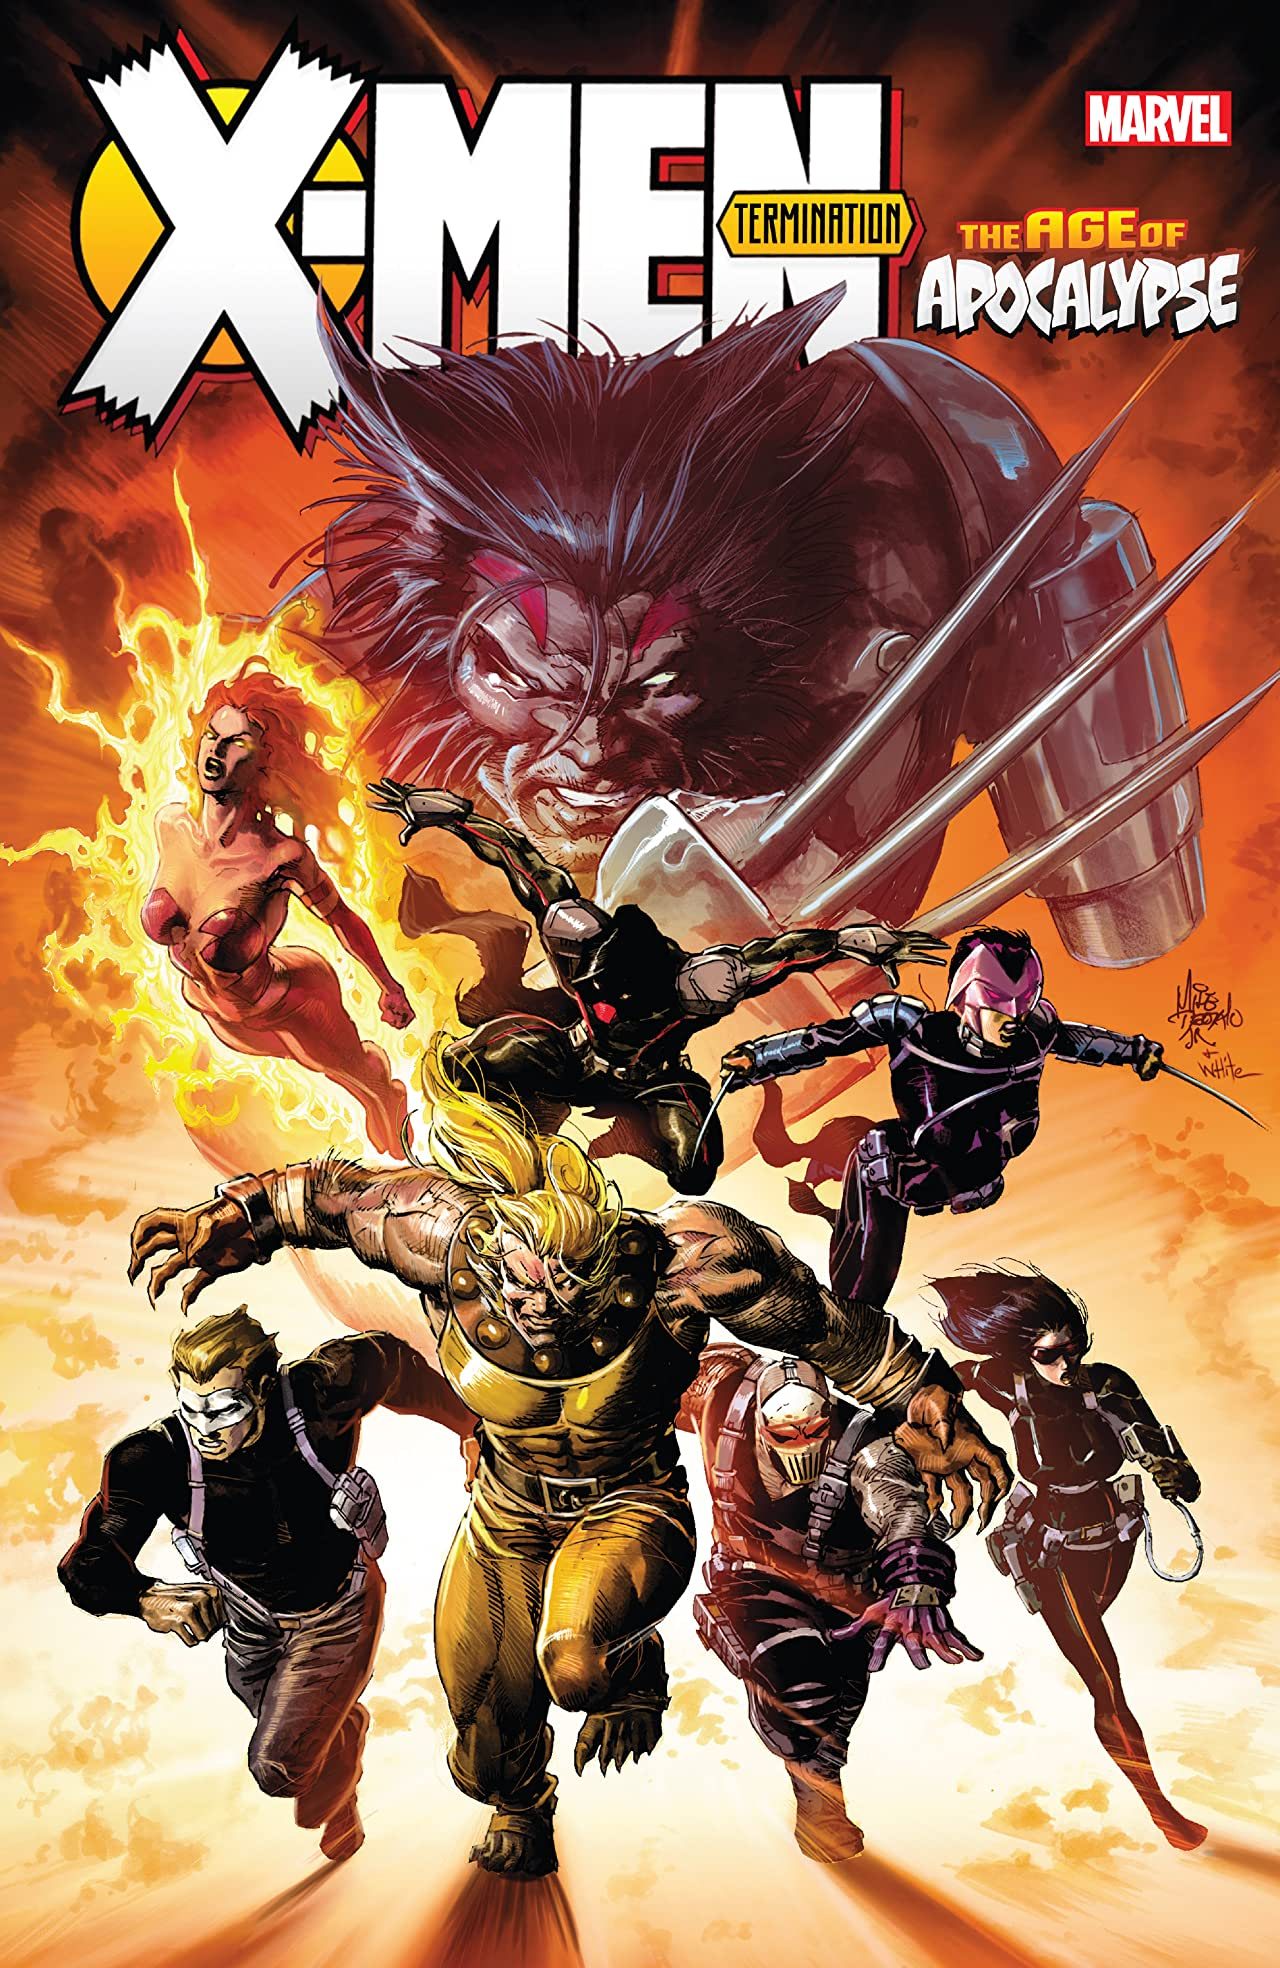 X-Men: Age of Apocalypse - Termination